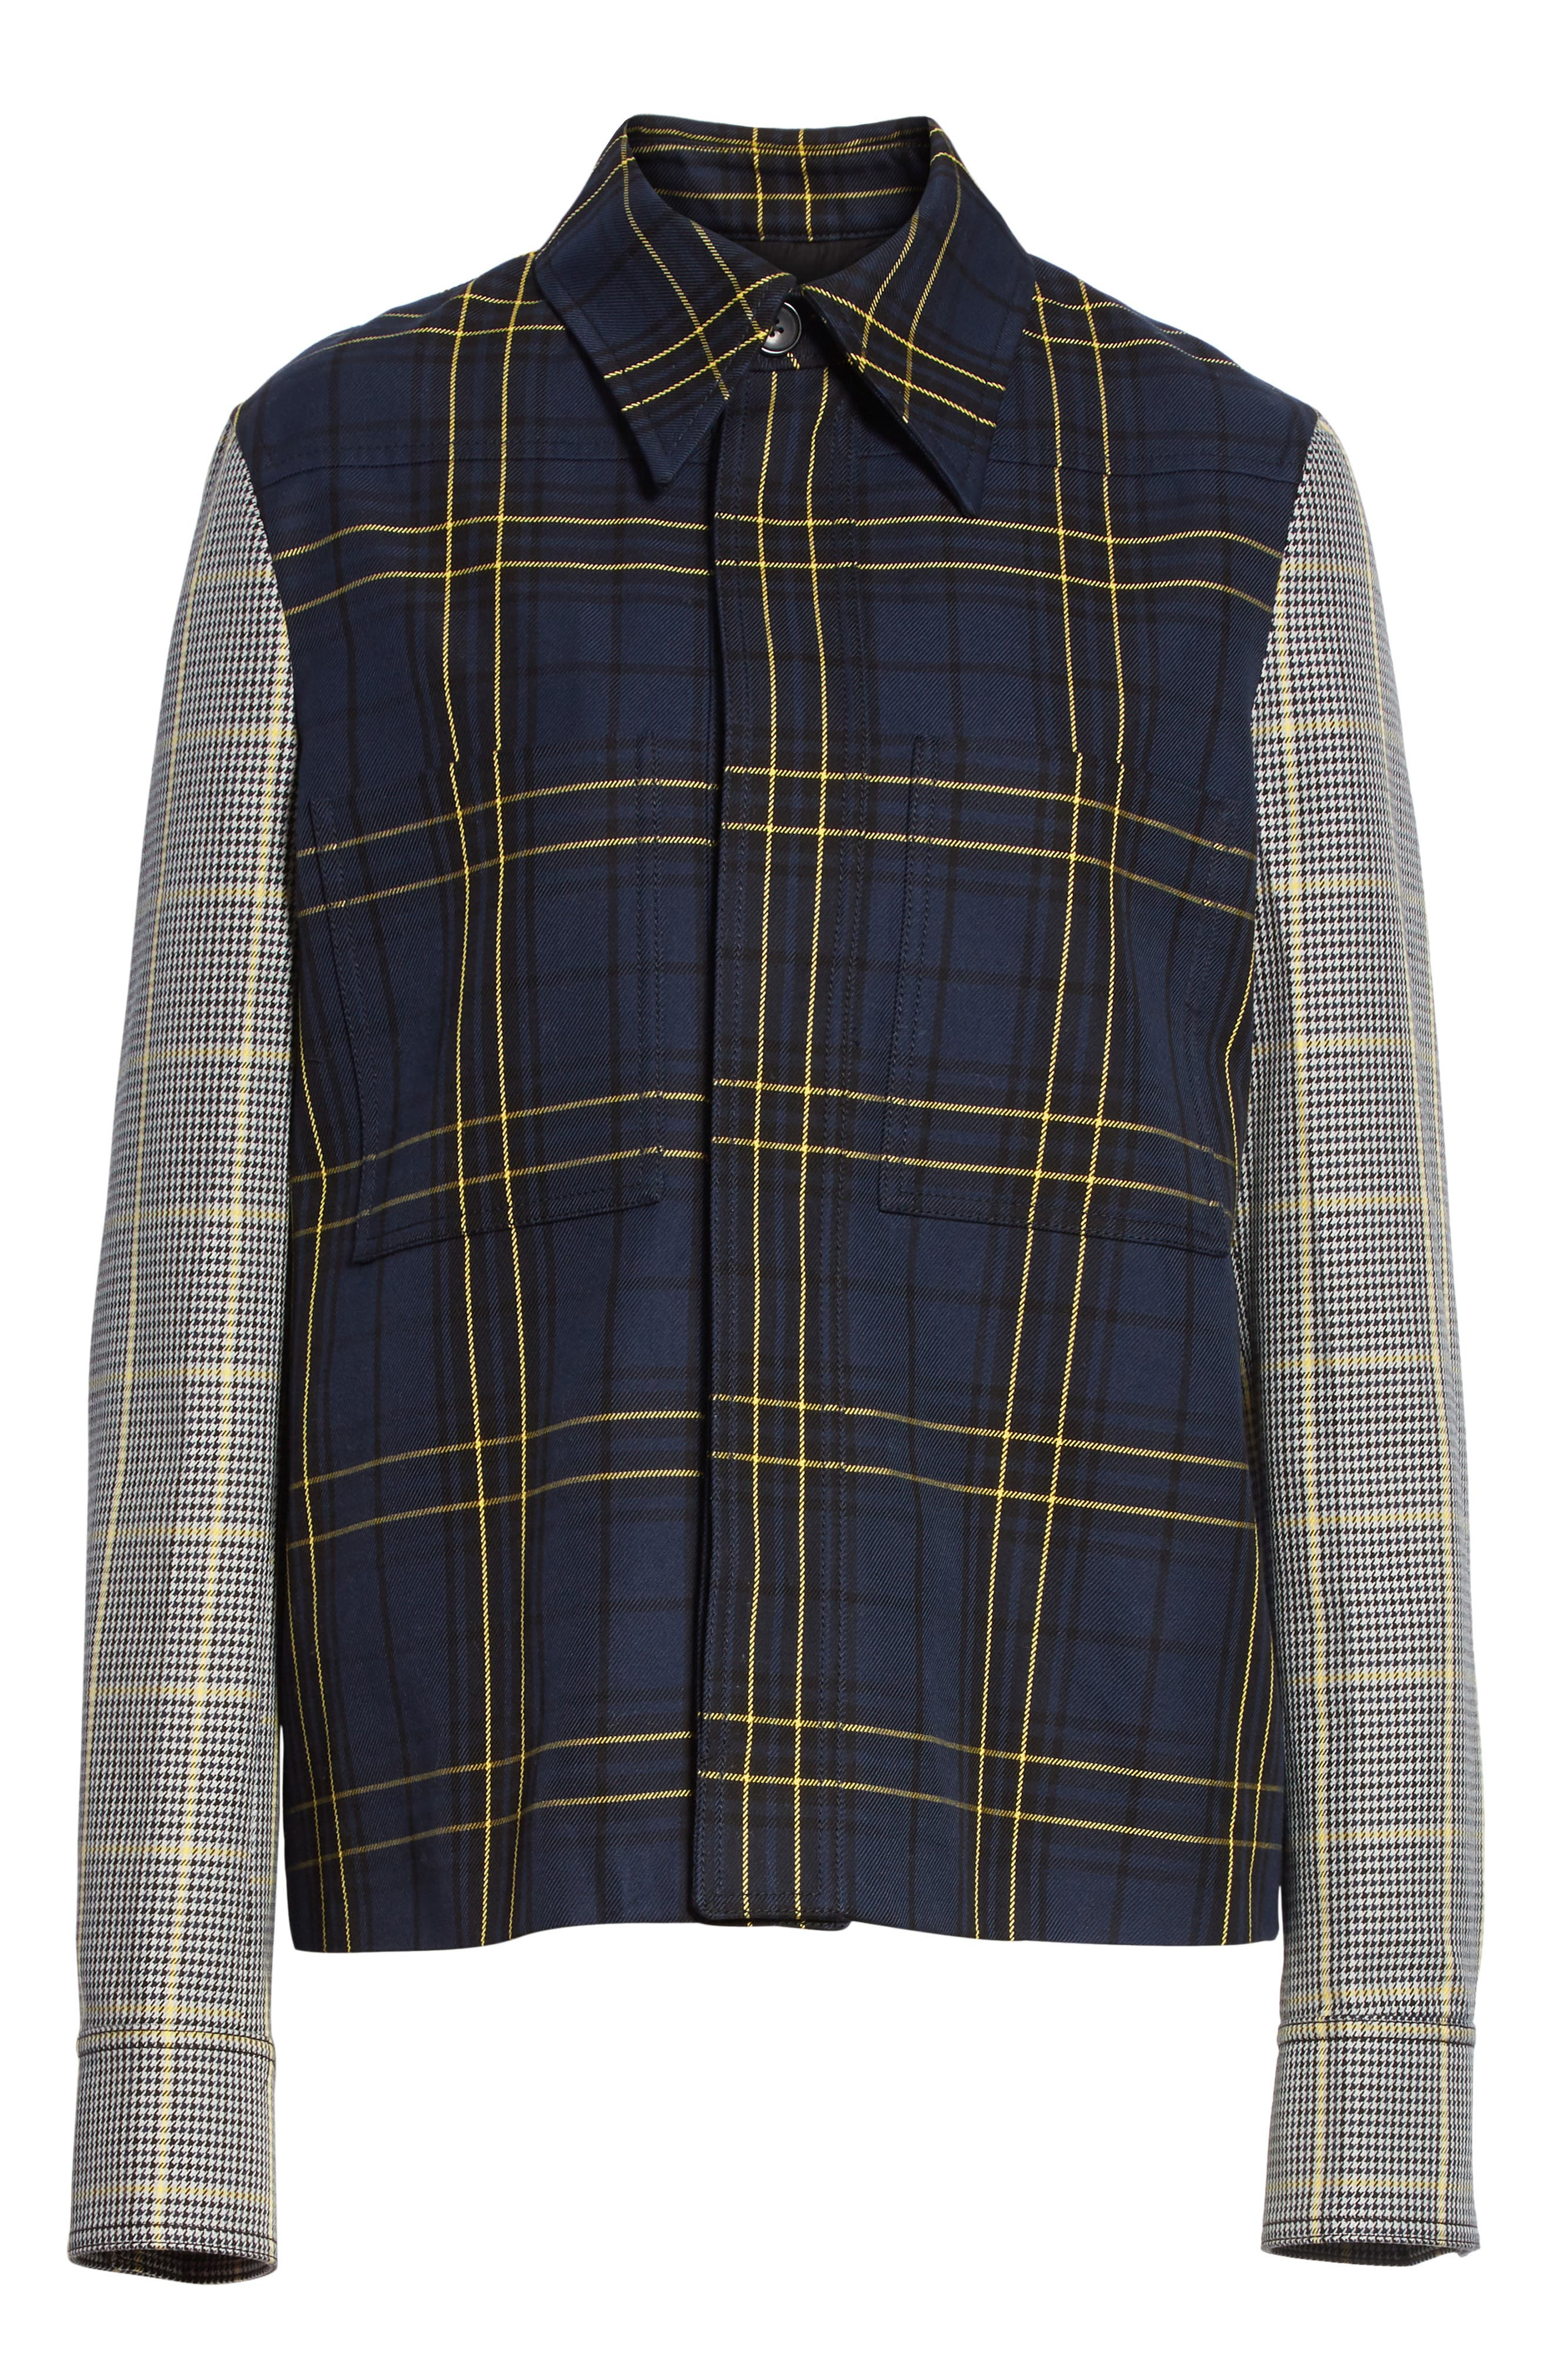 Coen Check Patchwork Jacket,                             Alternate thumbnail 5, color,